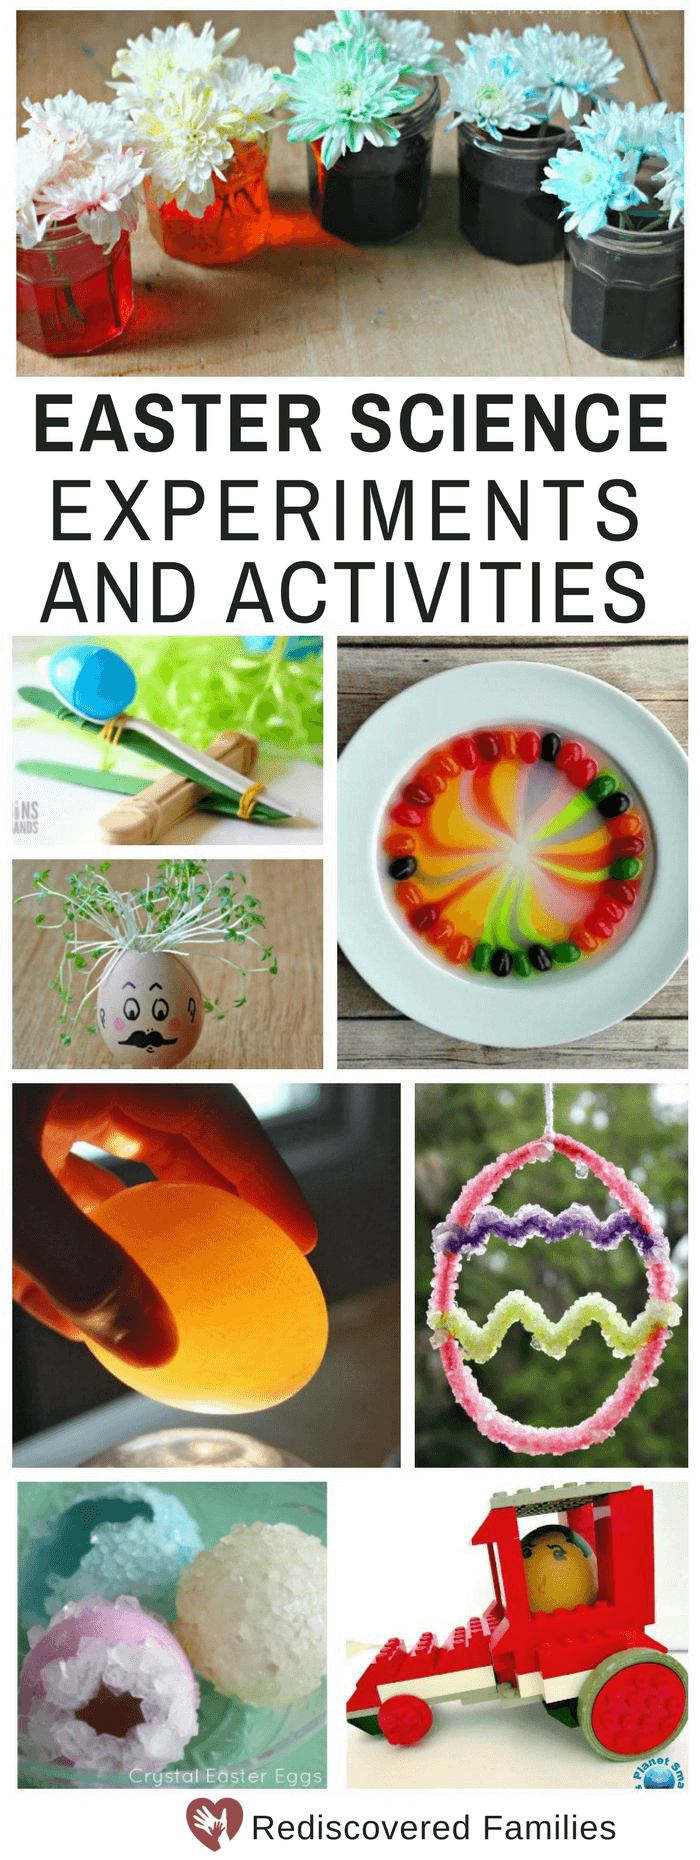 Easter Science Activities For Kids Pin Collage